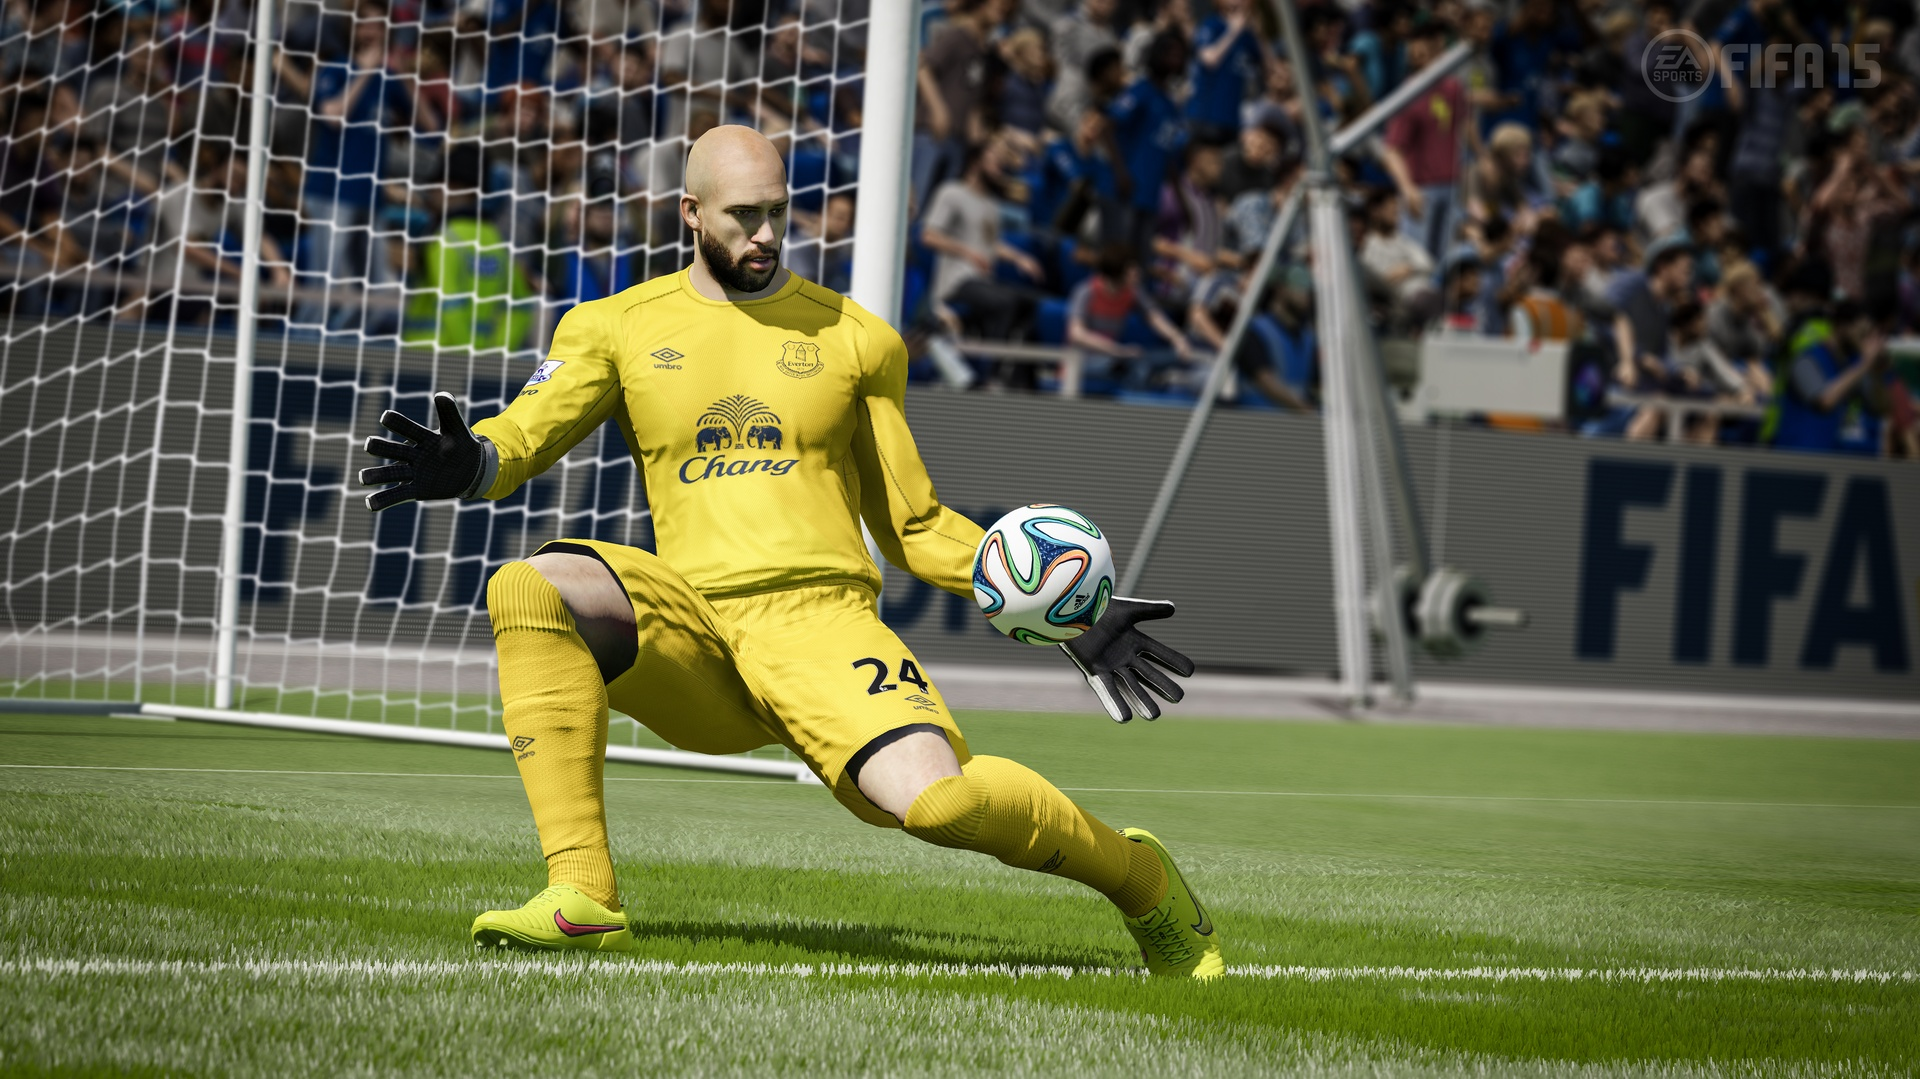 FIFA 15 Coins Guide:Making FIFA Coins with Enhancement Method